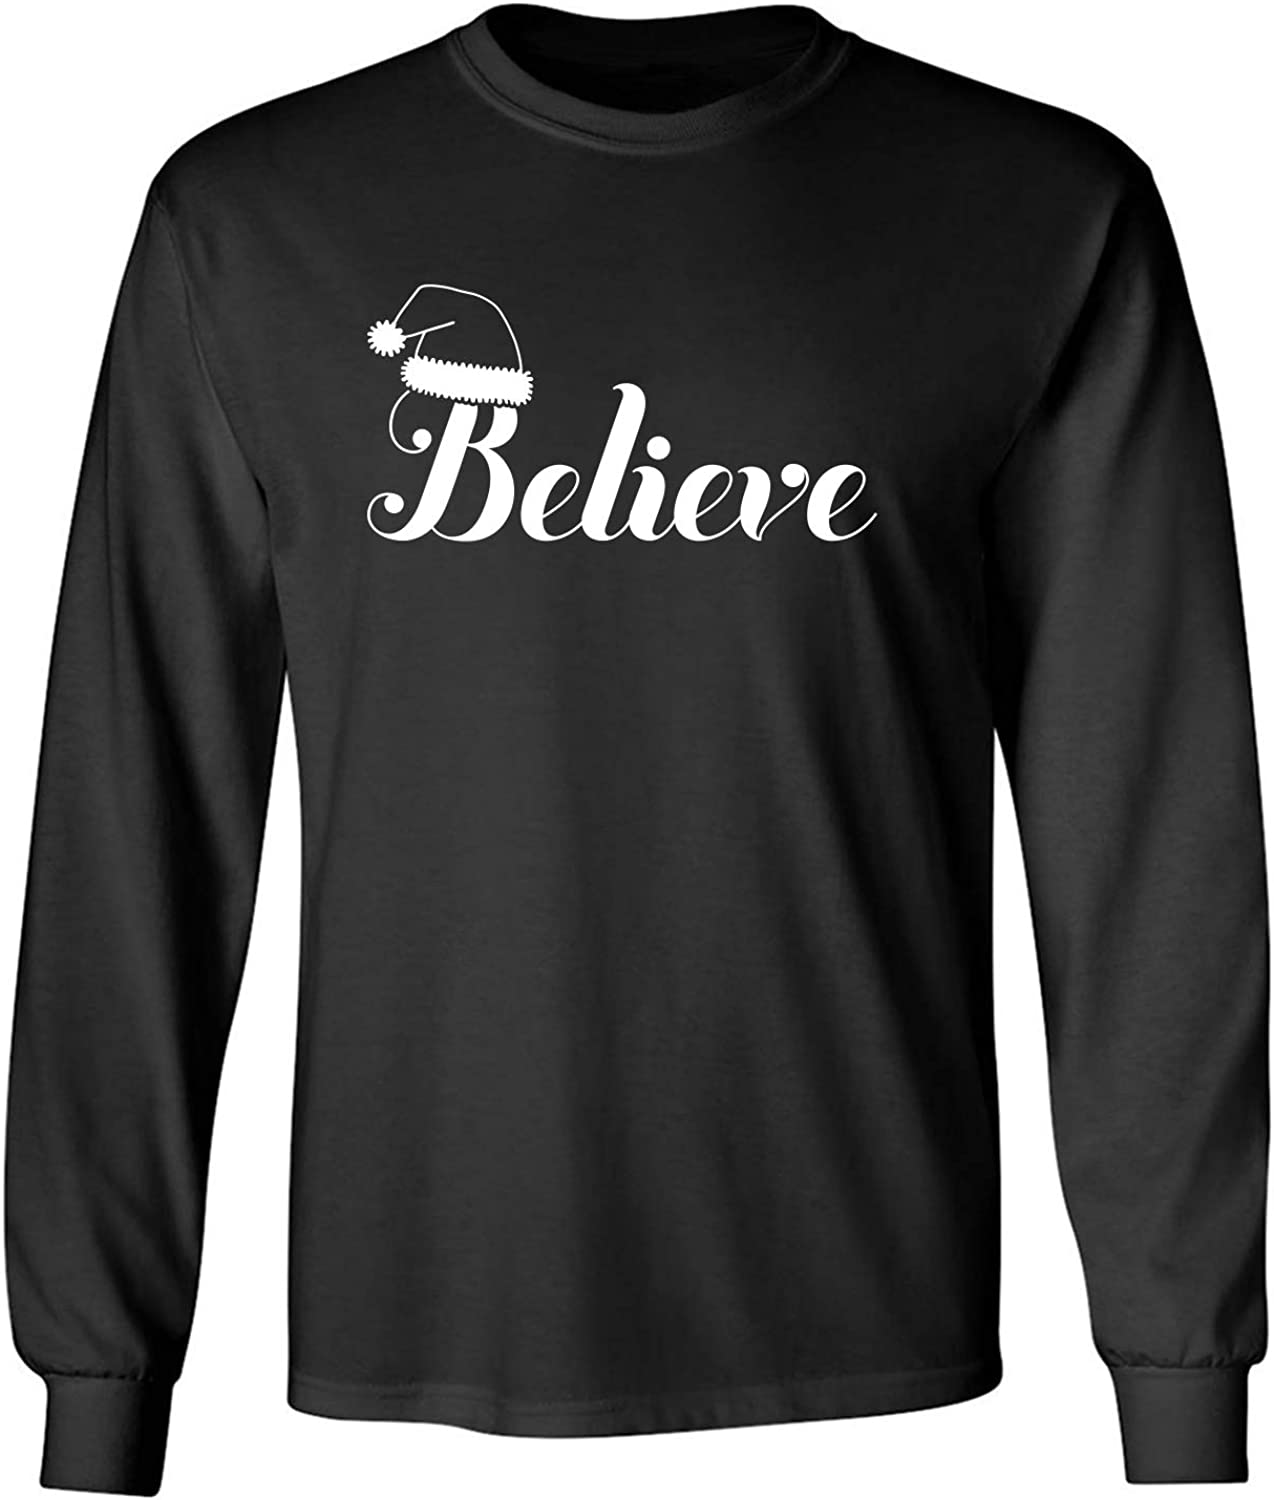 Believe Adult Long Sleeve T-Shirt in Black - XXXX-Large